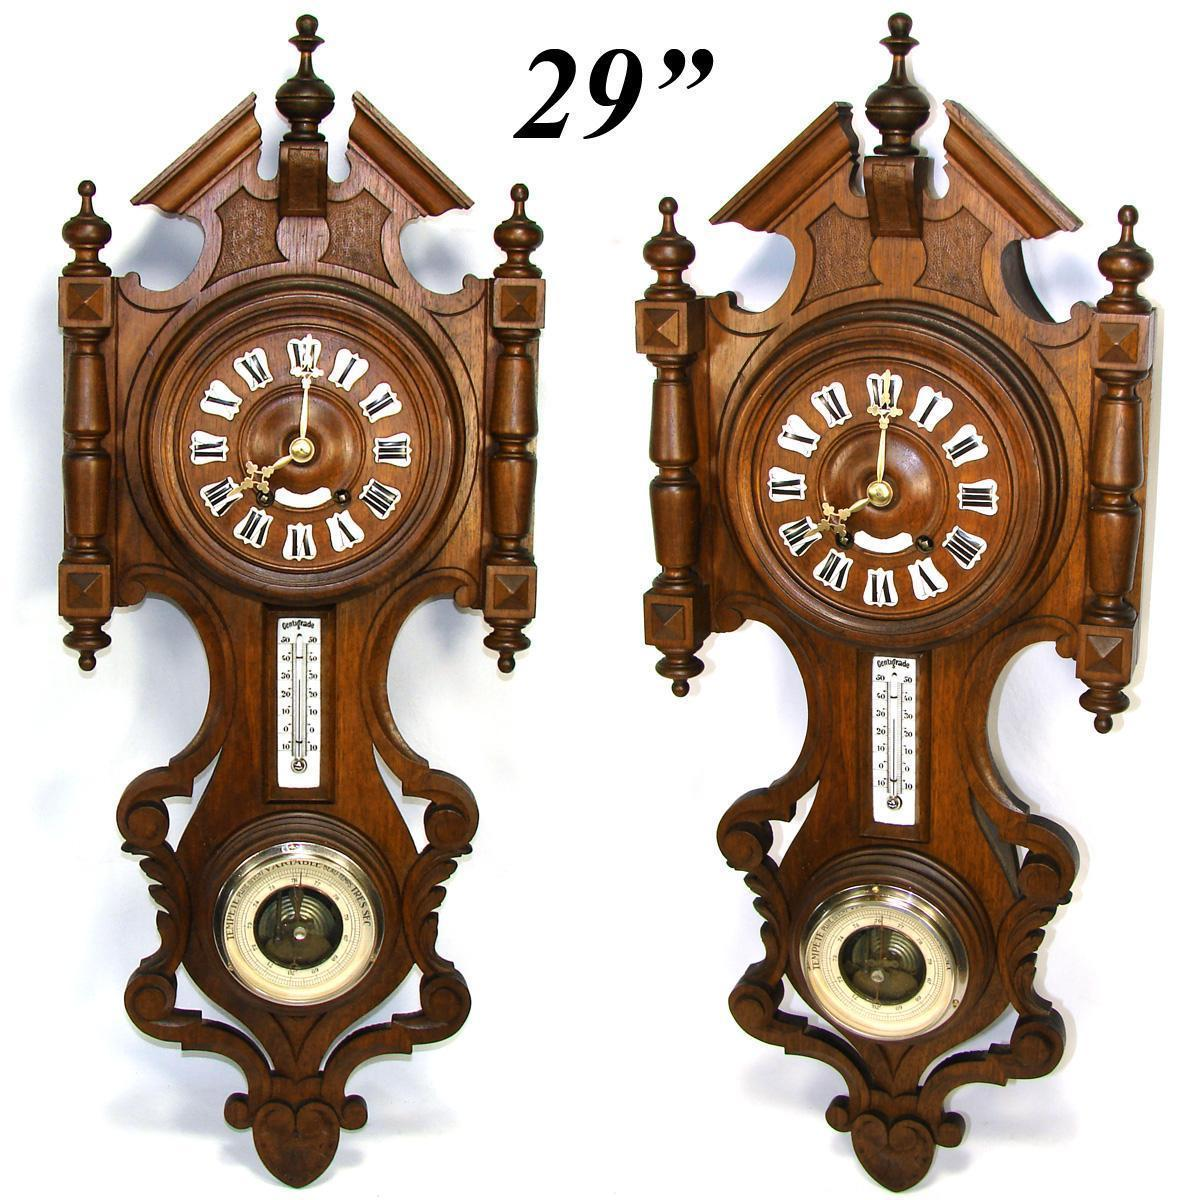 Antique french black forest style carved 29 wall clock barometer lg antique french black forest style carved wood 29 wall clock barometer thermometer amipublicfo Choice Image